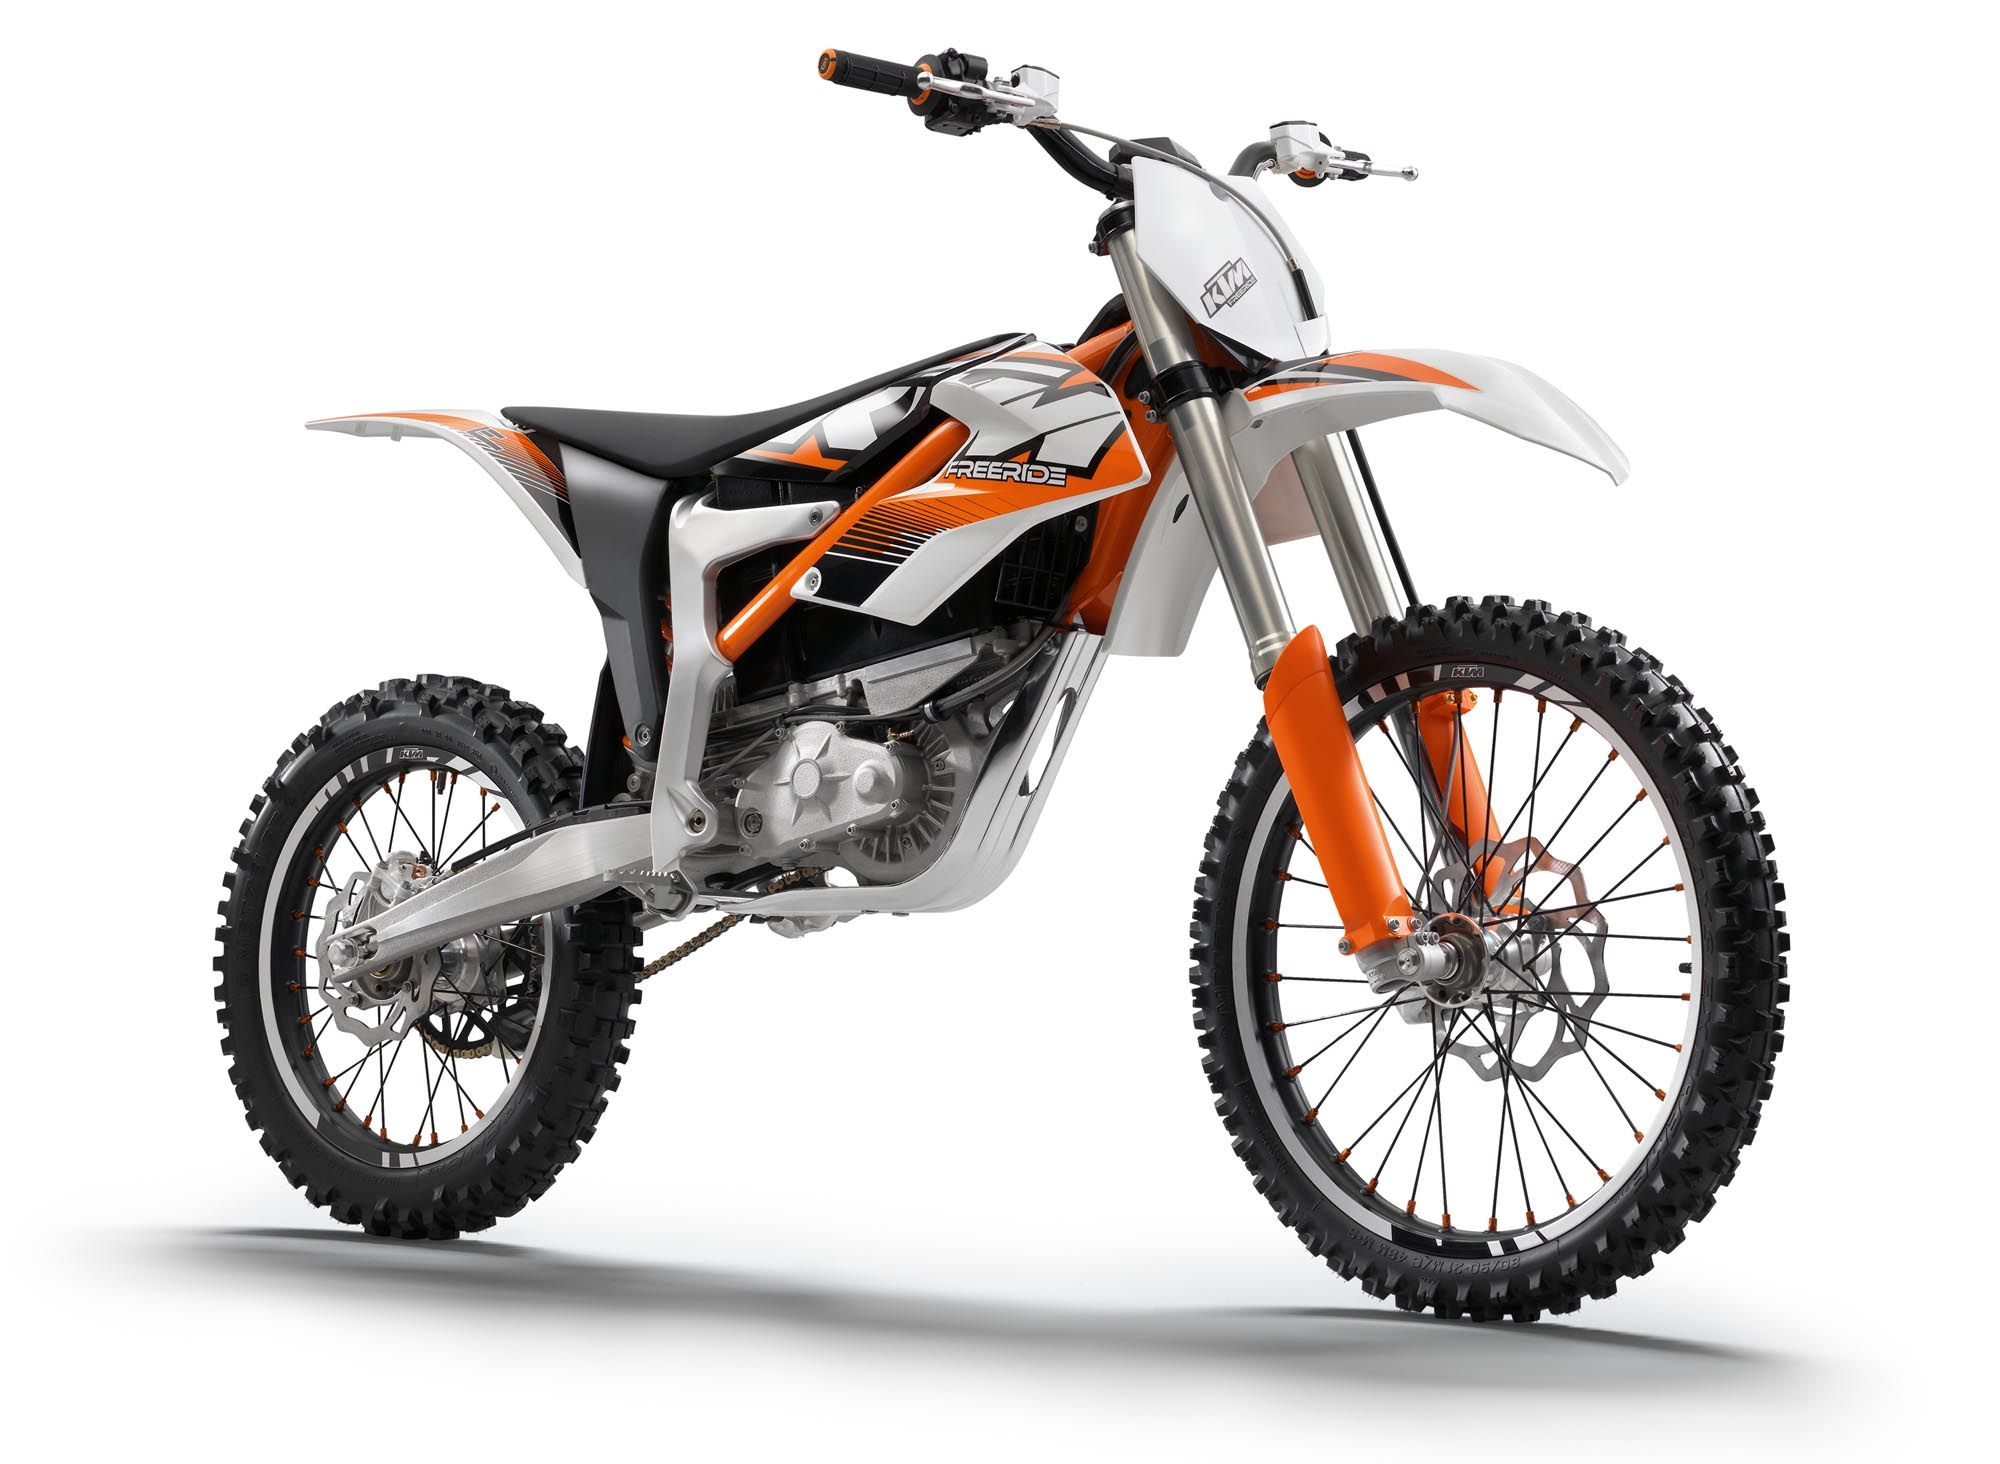 Ktm freeride e 10 000 electric dirt bike first proper electric motorcycle to be